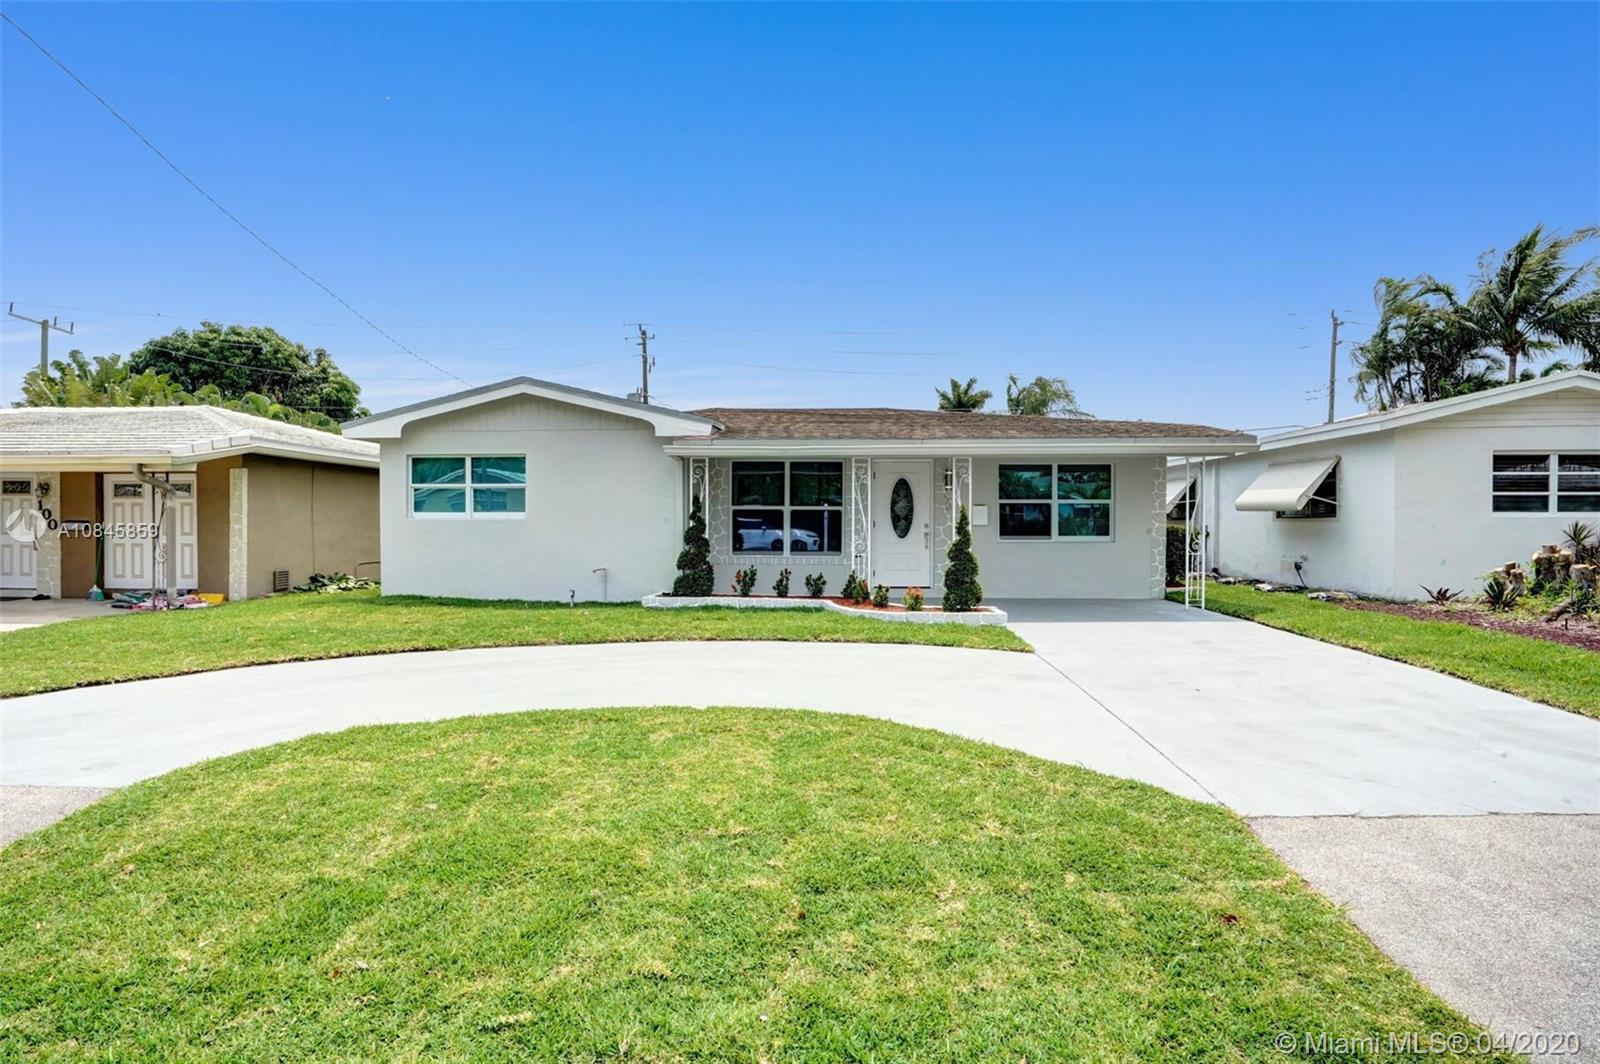 BEAUTIFULLY FULLY REMODELED 3/2 HOME IN THE HEART OF OAKLAND PARK! PERFECT TURN-KEY STARTER HOME OR VACATION RENTAL OPPORTUNITY! HOME FEATURES ALL HURRICANE IMPACT WINDOWS AND DOORS, 2008 SHINGLE ROOF, 2009 A/C UNIT, NEW BATHROOMS, BRAND NEW WHIRLPOOL WASHER AND DRYER , SPRINKLERS SYSTEM WITH NEW GRASS. NEW CUSTOM KITCHEN WITH HIGH END EUROPEAN CABINETS, QUARTZ COUNTERTOP AND BRAND NEW STAINLESS STEEL APPLIANCES, RECESSED LIGHTING THROUGHOUT, LARGE BACKYARD NICE FOR ENTERTAINMENT OR TO BUILD A POOL, VERY LARGE AND SPACIOUS CIRCULAR DRIVEWAY, FRESHLY PAINTED INSIDE/OUT... MINUTES FROM SCHOOLS, BEACH, SHOPPING PLAZAS ETC.. HURRY THIS WONT LAST LONG!!